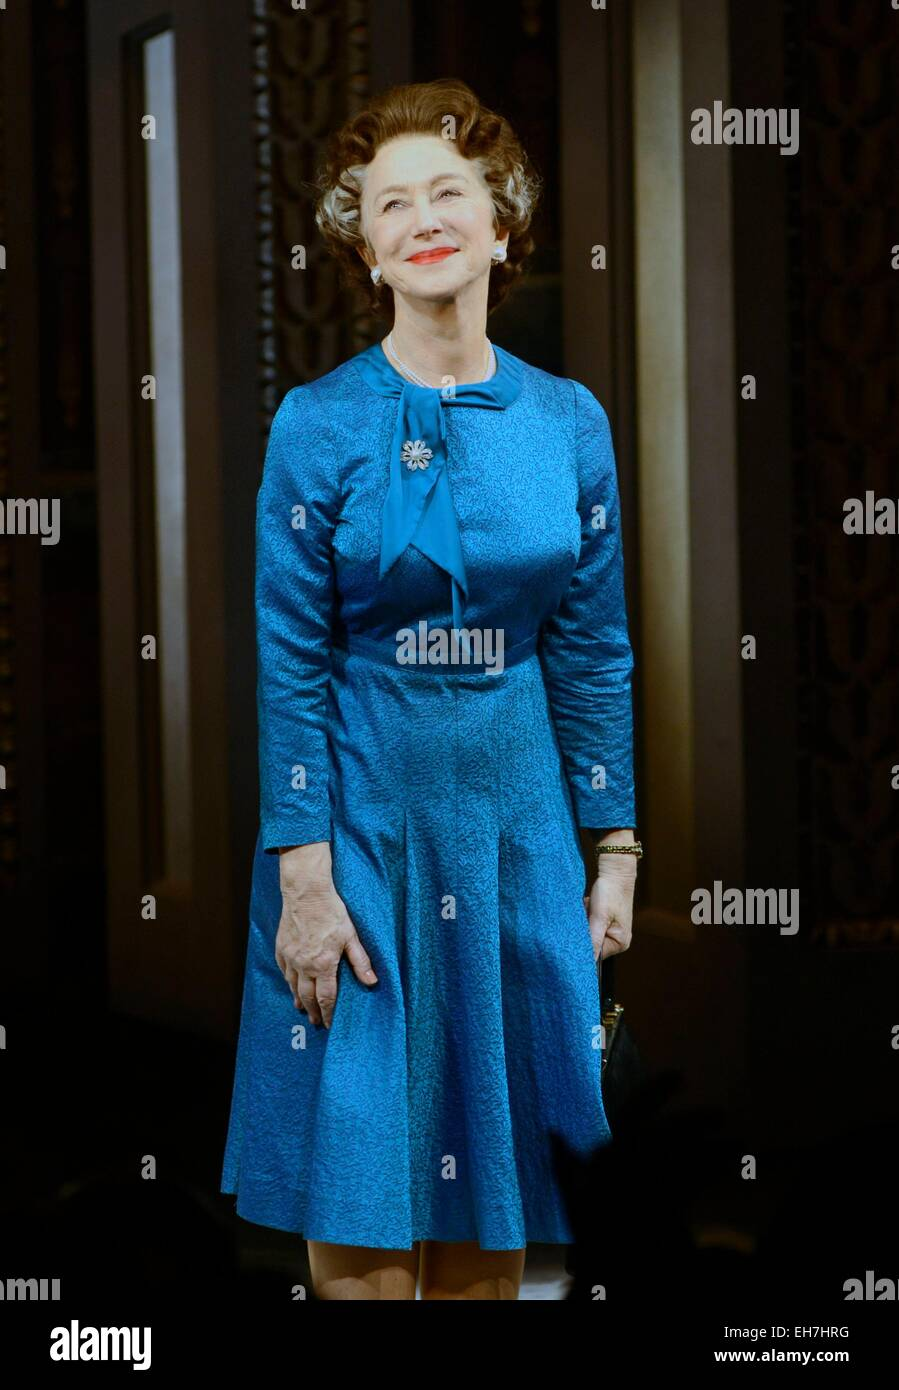 New York, NY, USA. 8th Mar, 2015. Helen Mirren in attendance for THE AUDIENCE Opening Night on Broadway, Gerald Schoenfeld Theatre, New York, NY March 8, 2015. Credit:  Derek Storm/Everett Collection/Alamy Live News Stock Photo